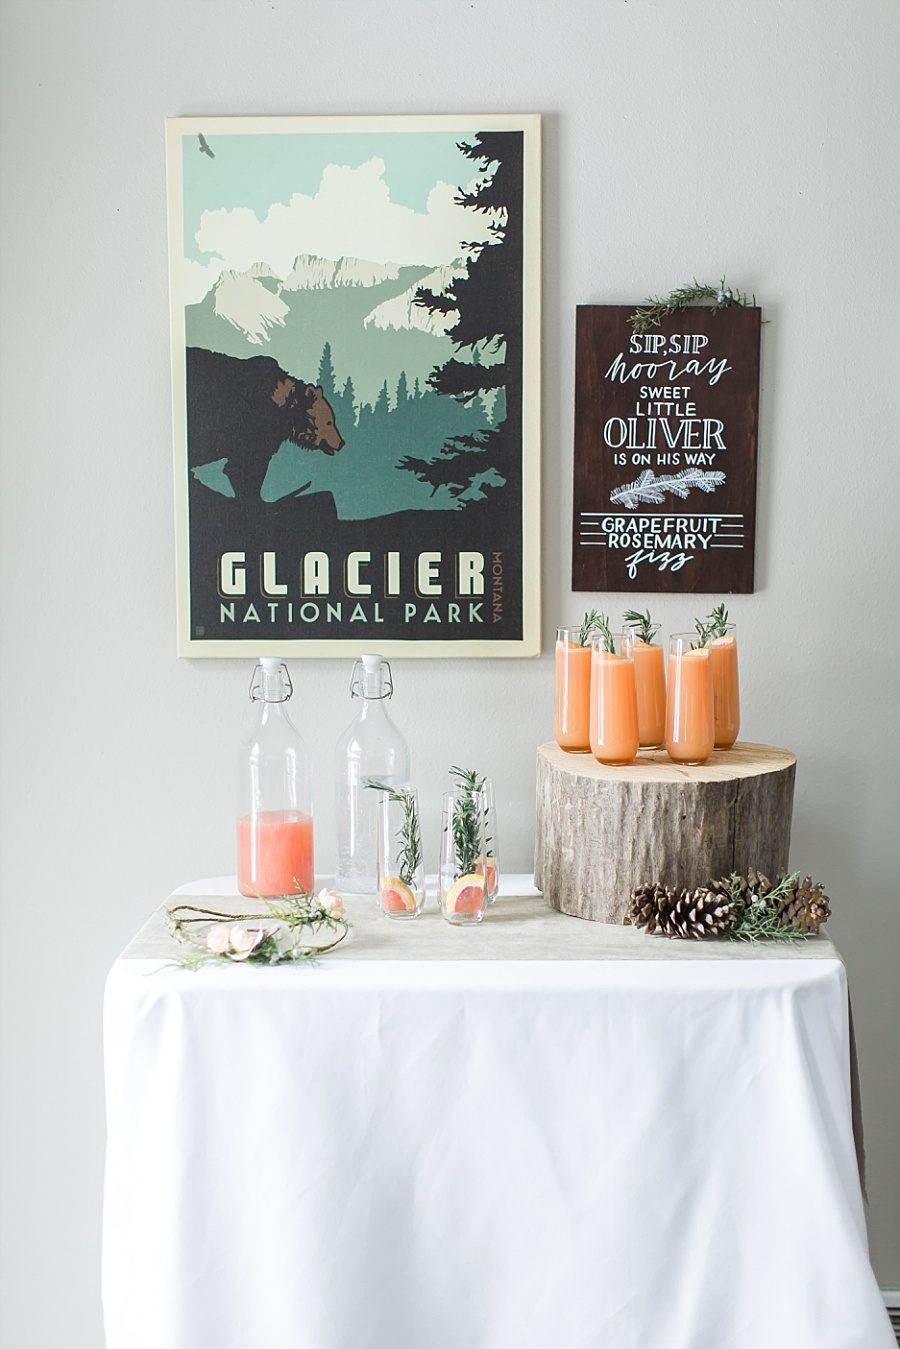 Vintage Glacier national park poster for baby shower styling with rosemary grapefruit spritzers styled on wood round